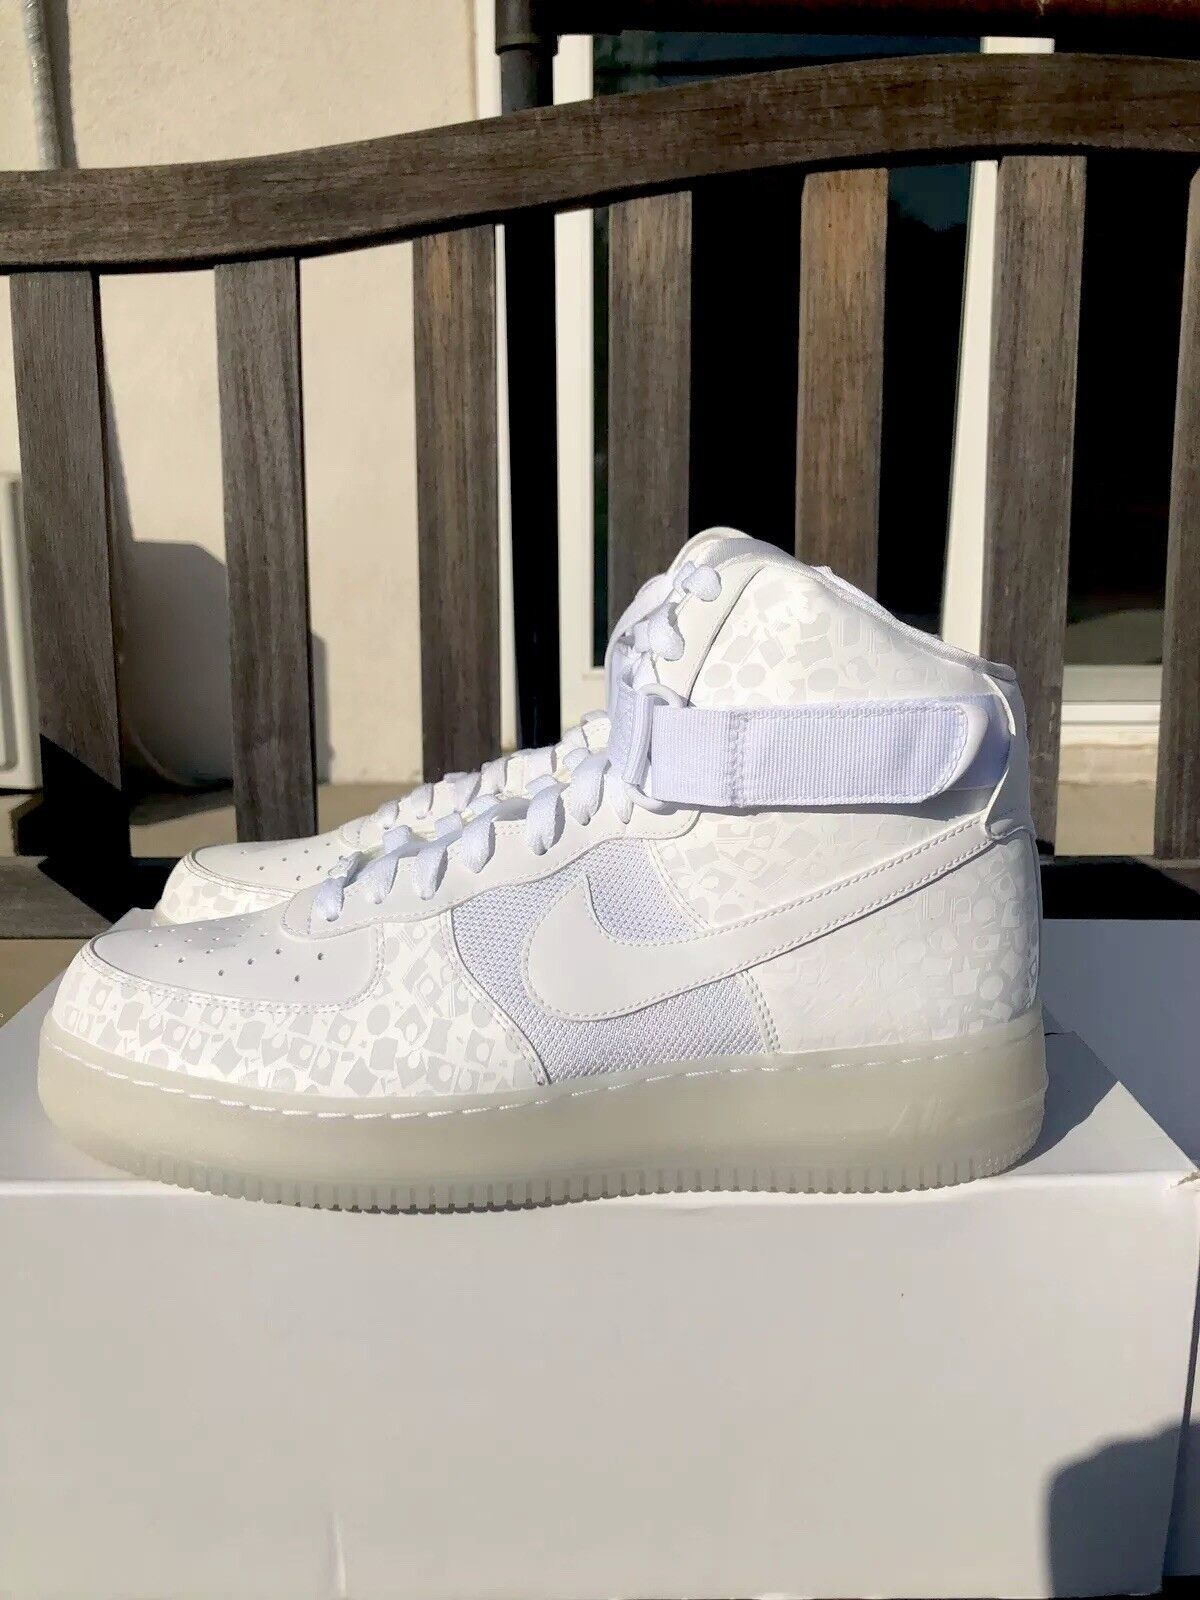 BRAND NEW Nike Air Force 1 HIGH '07 STASH '17 ComplexCon Exclusive  1 93 Sz 10.5